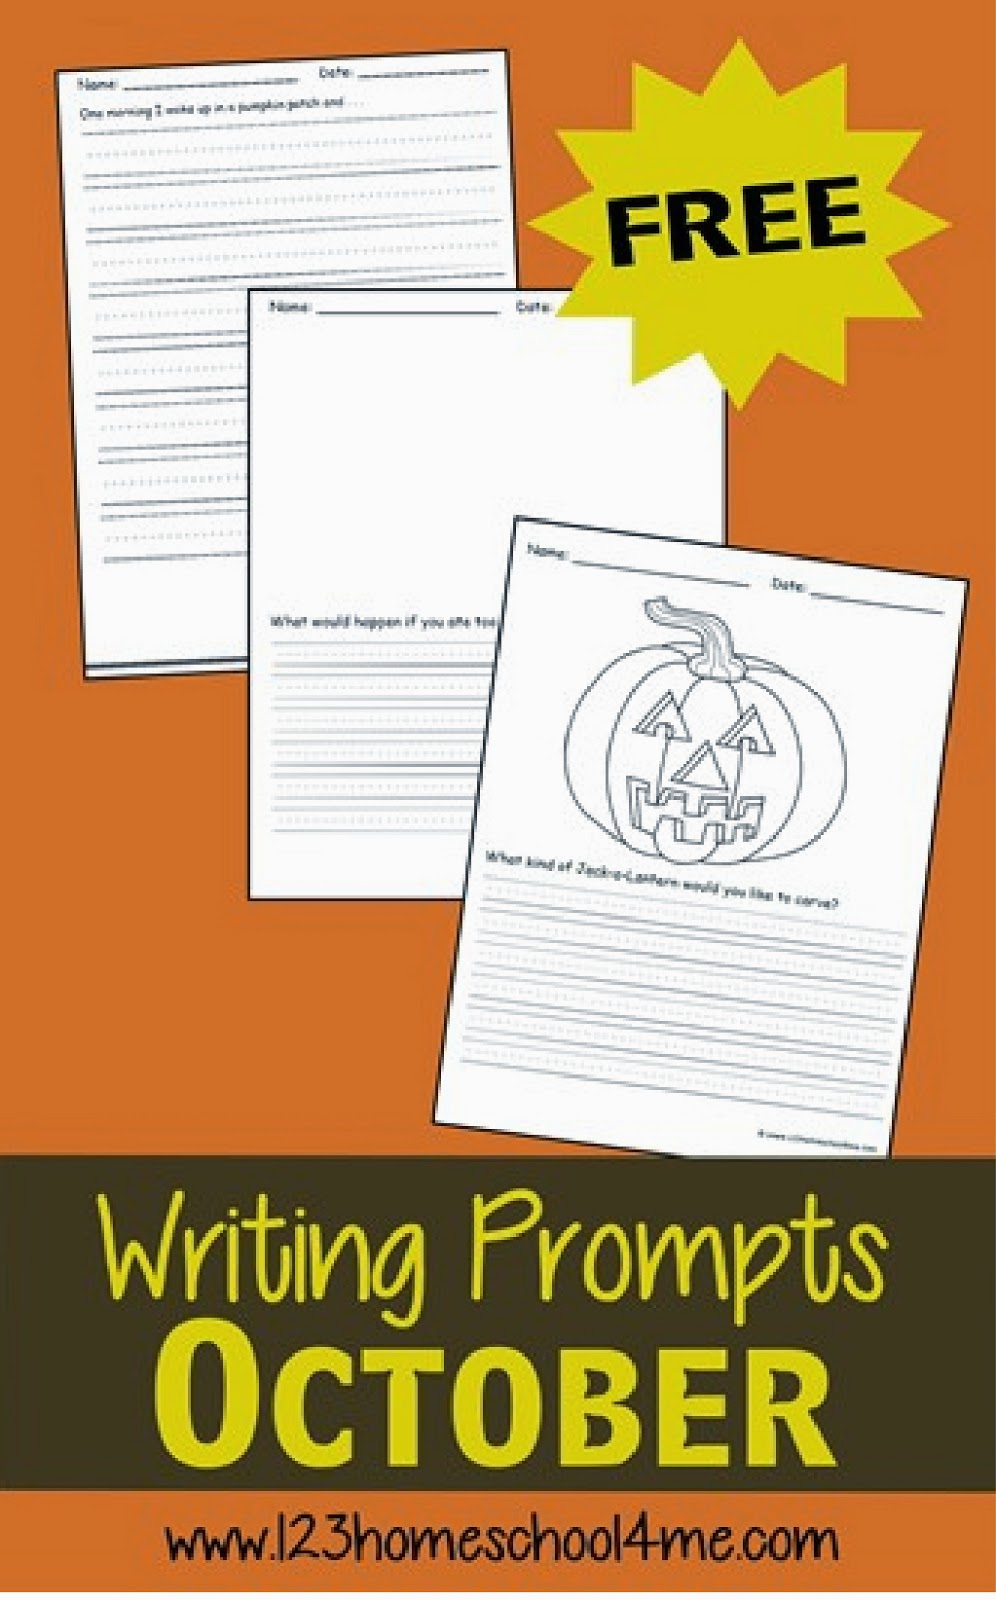 homeschool creative writing prompts Homeschooling writing 30 summer writing prompts with free printable journal pin 91 share 15 tweet 106 shares  i put together 30 creative summer writing prompts and i wanted to share them with you for inspiration summer writing prompts.